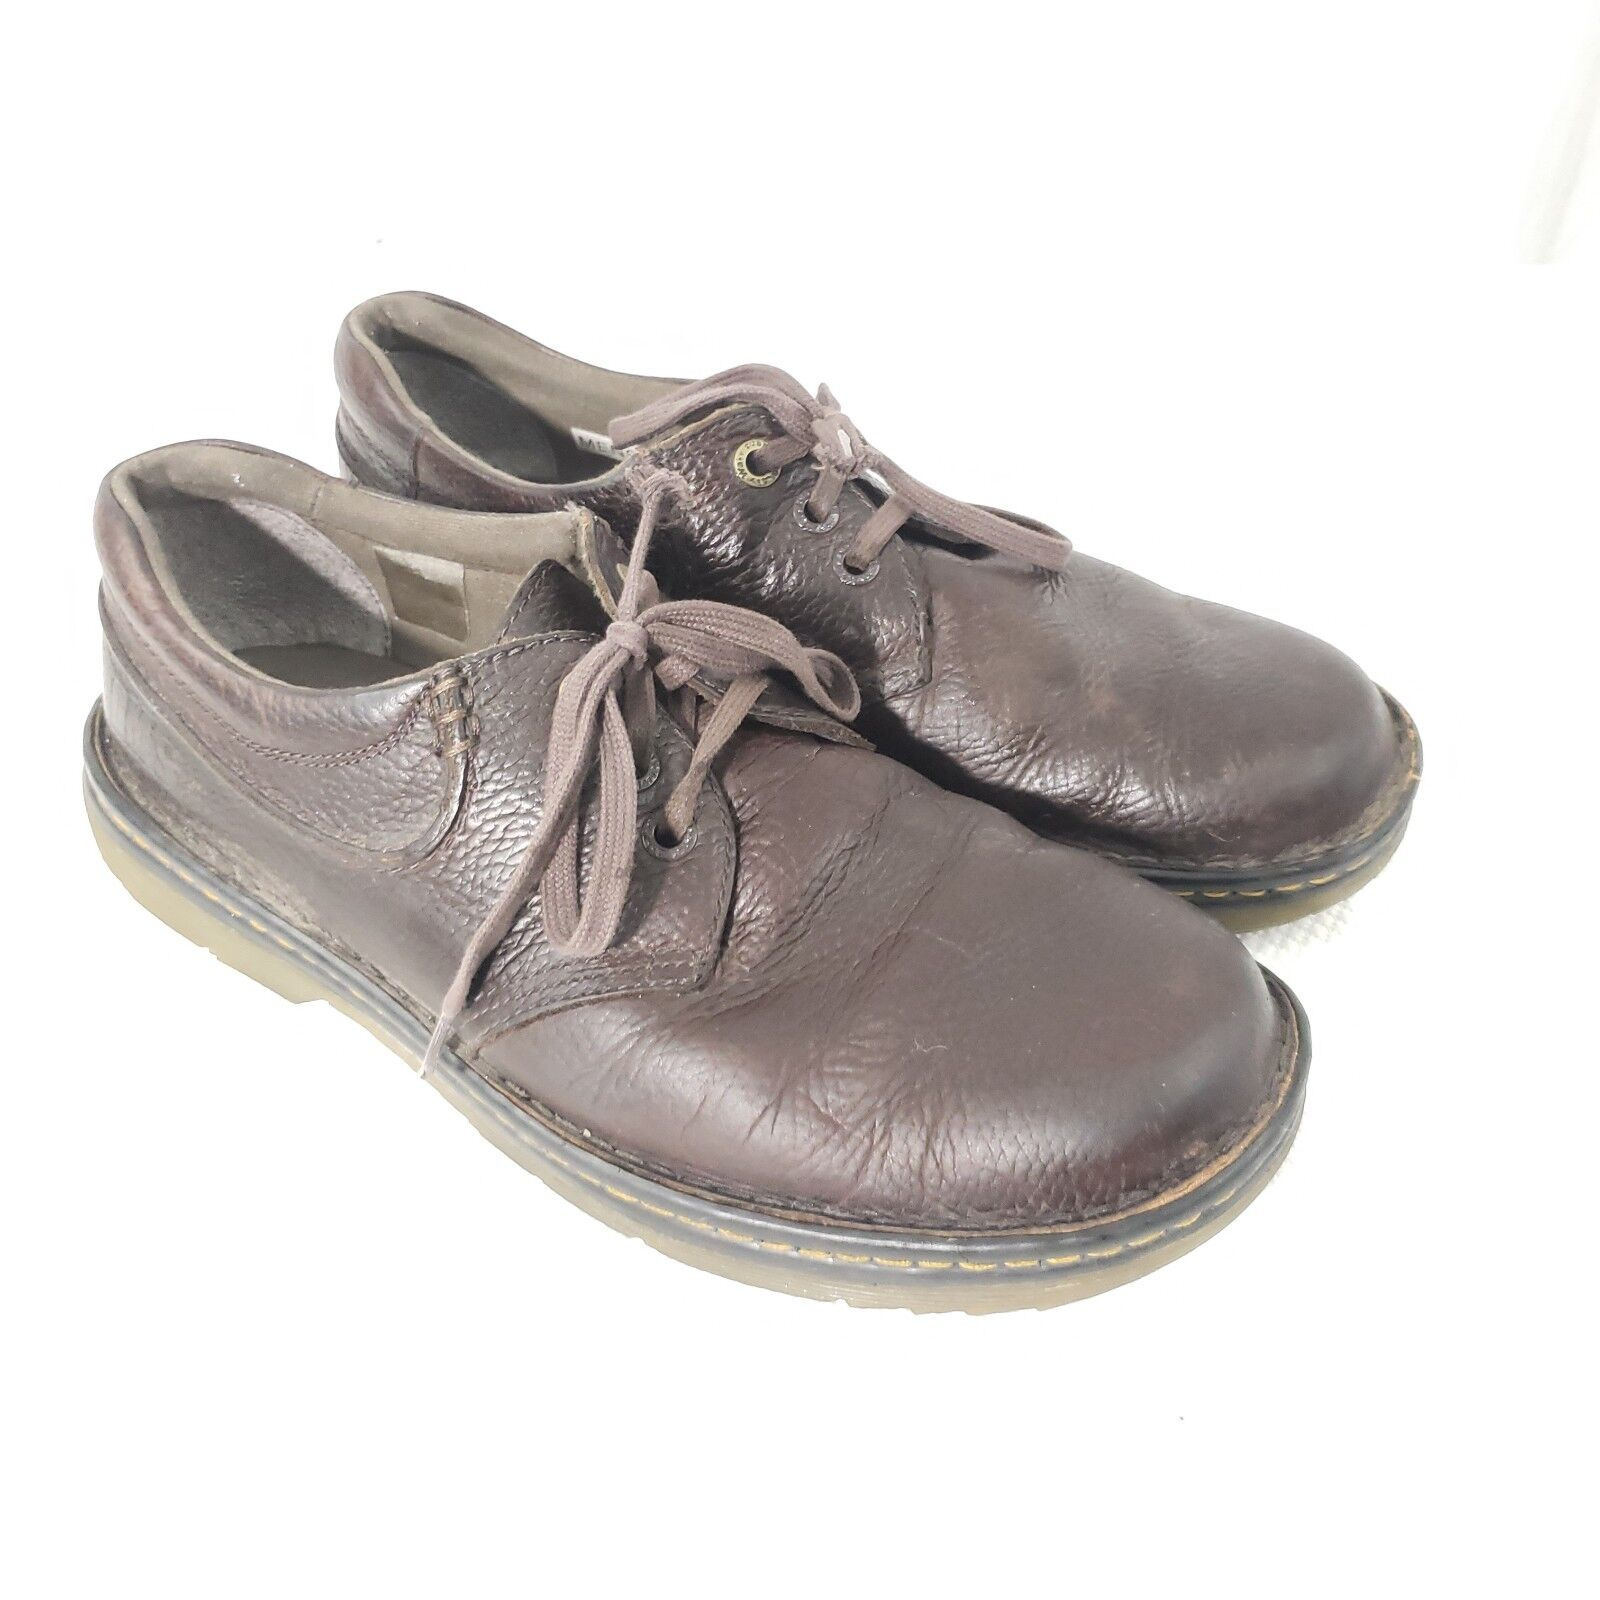 Dr Martens Men's US 11 Hampshire Casual Oxford Work Shoes Brown Industrial